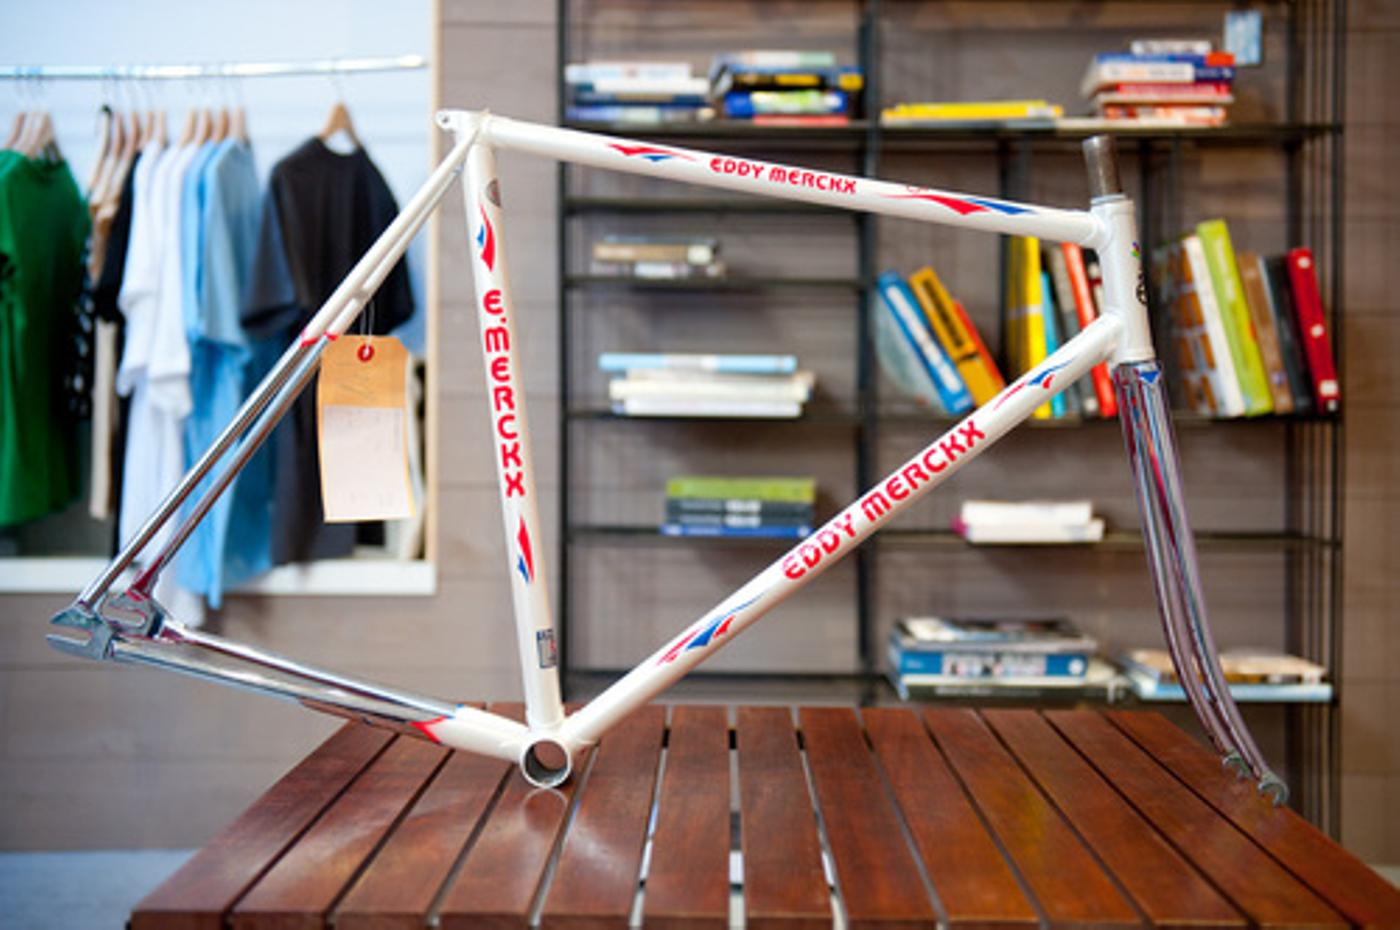 MERCKX-steel-track-001.jpg